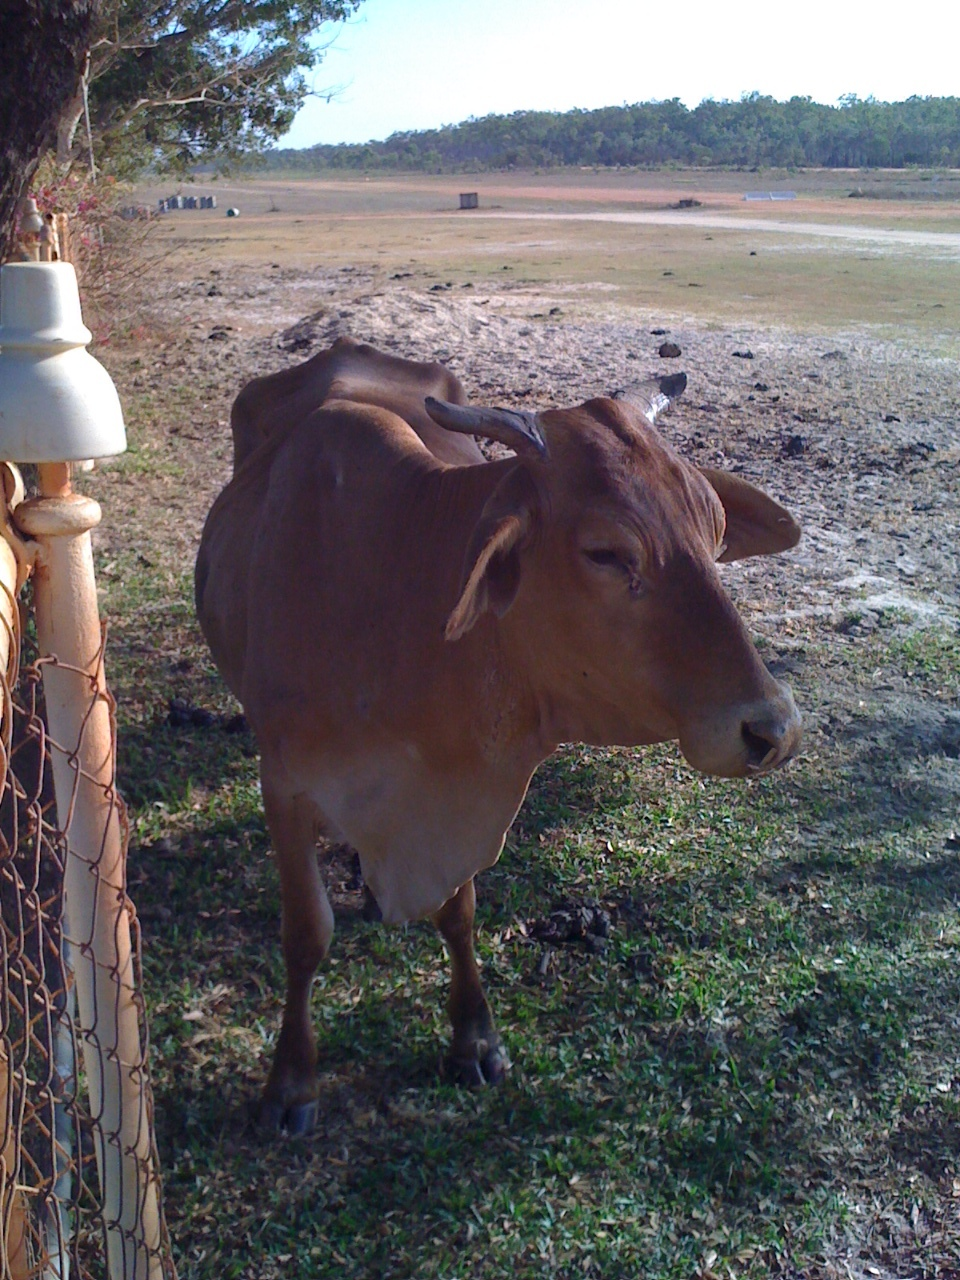 Brahman cow near the runway at Musgrave Roadhouse, Cape York peninsula, Queensland, Australia